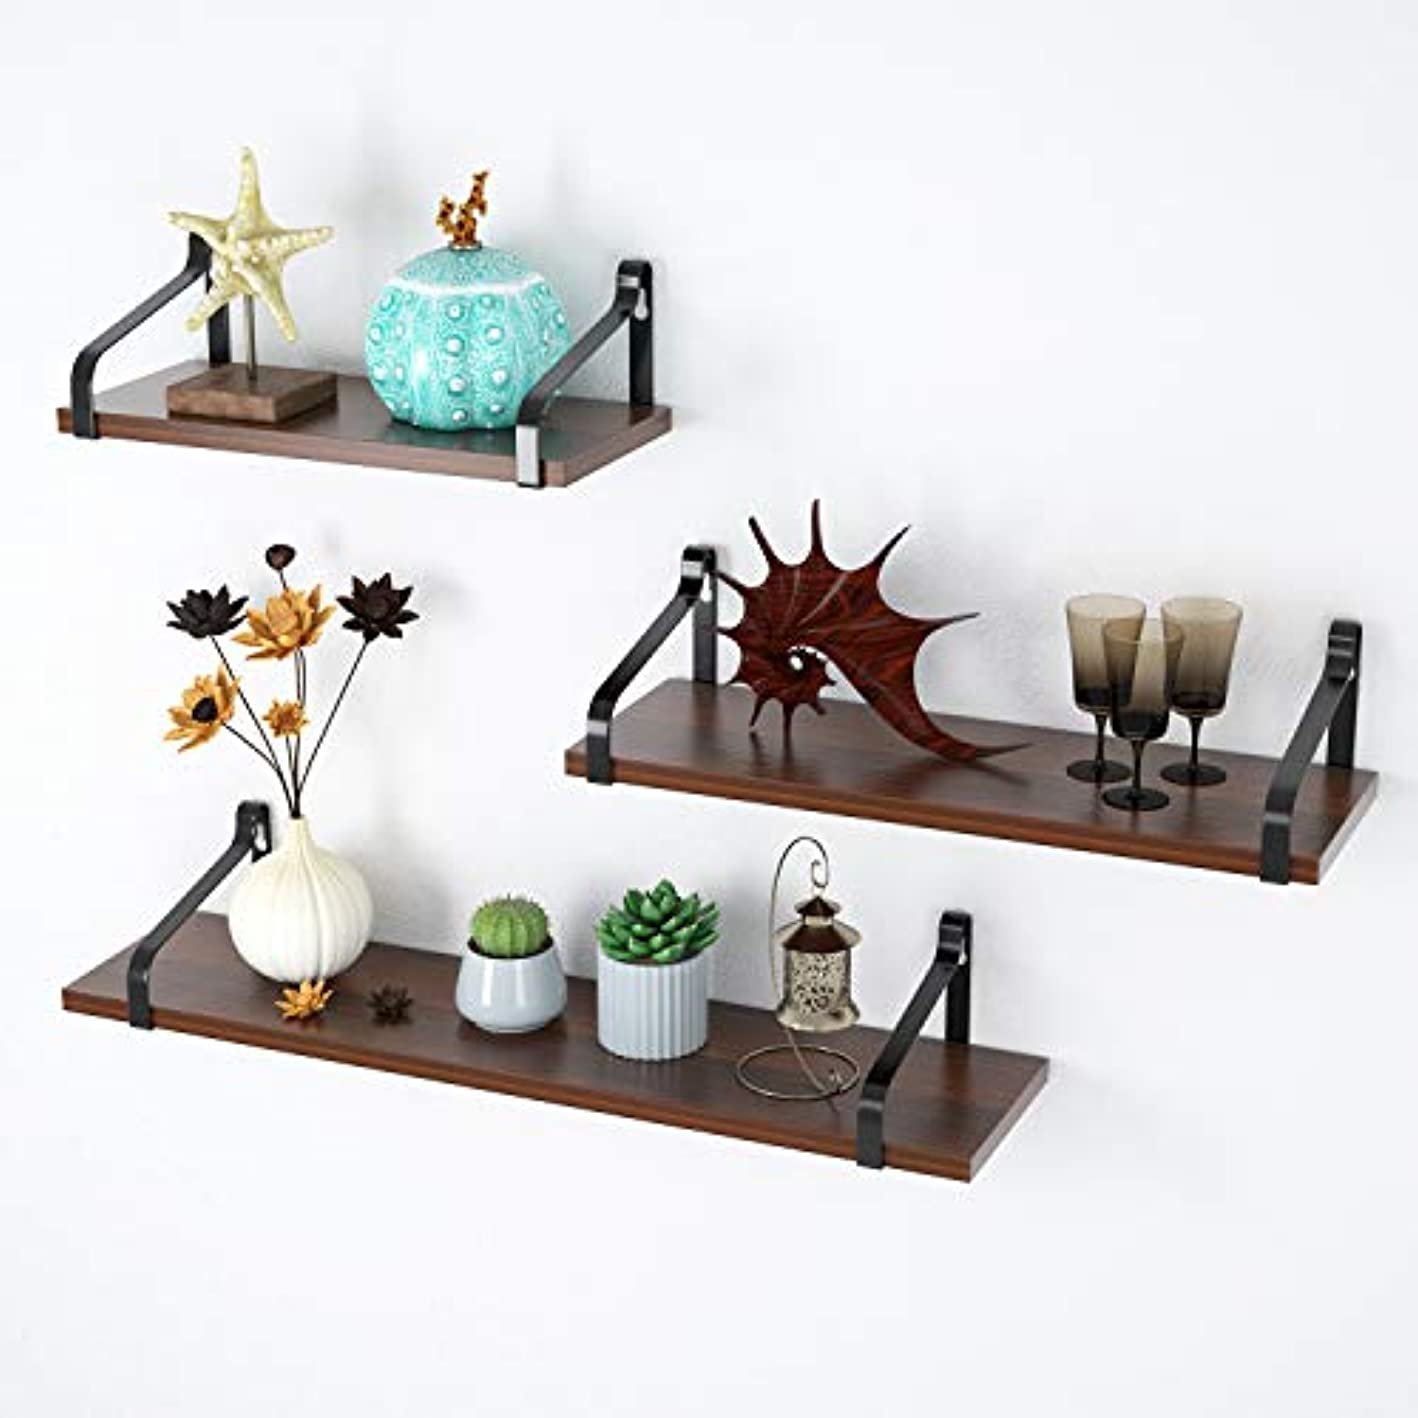 MVPower Floating Shelves Industrial Wall Mounted Rustic Wood Wall Storage Shelf Set for Picture Frames, Hanging Shelves Set of 3 Display Ledge Decorative Shelves Ideal for Home and Office (Retro)